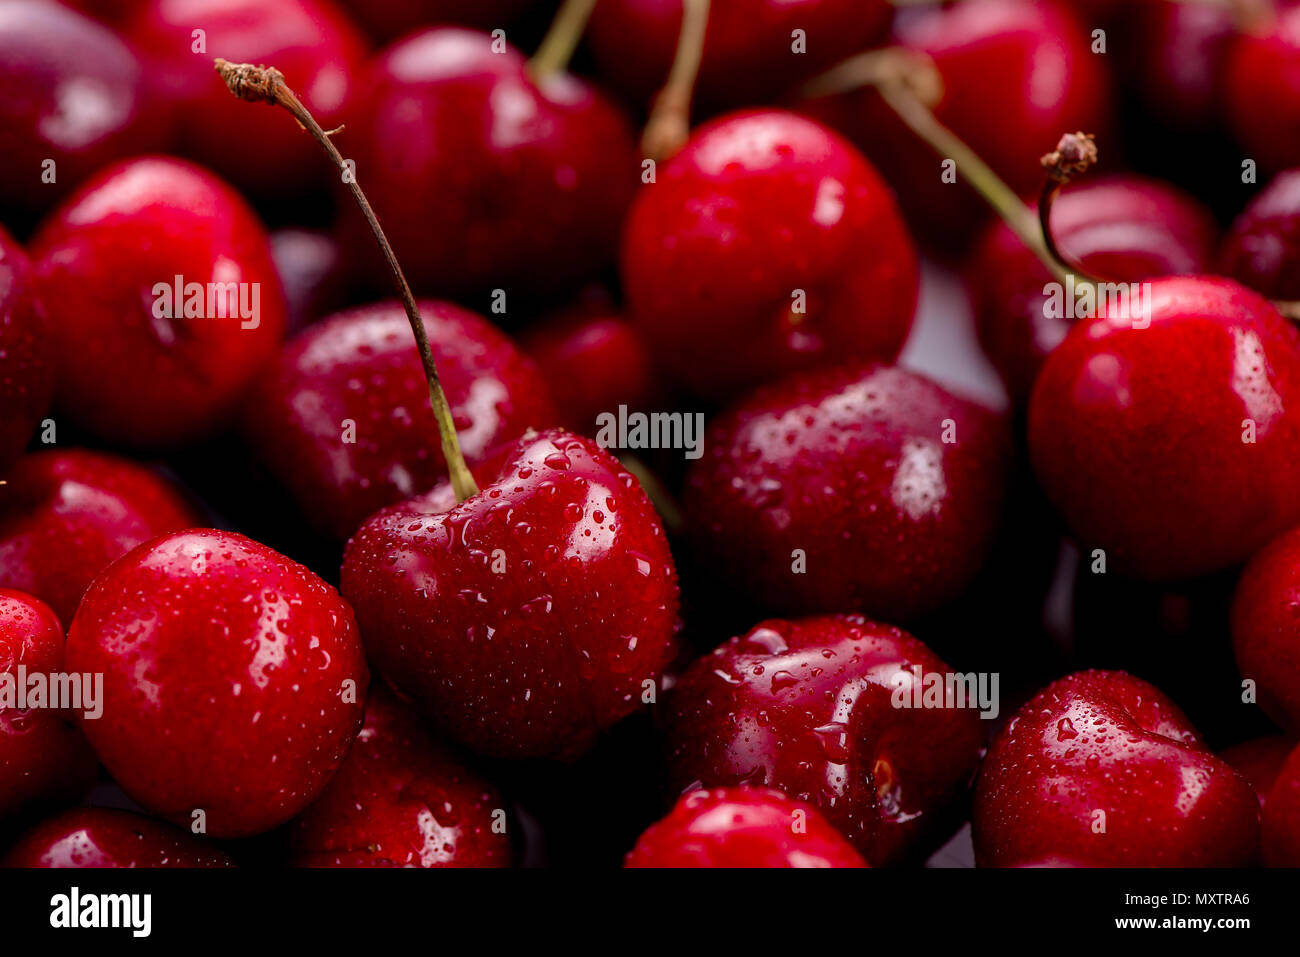 Cherries with water drops header. Macro berries shot with copy space - Stock Image